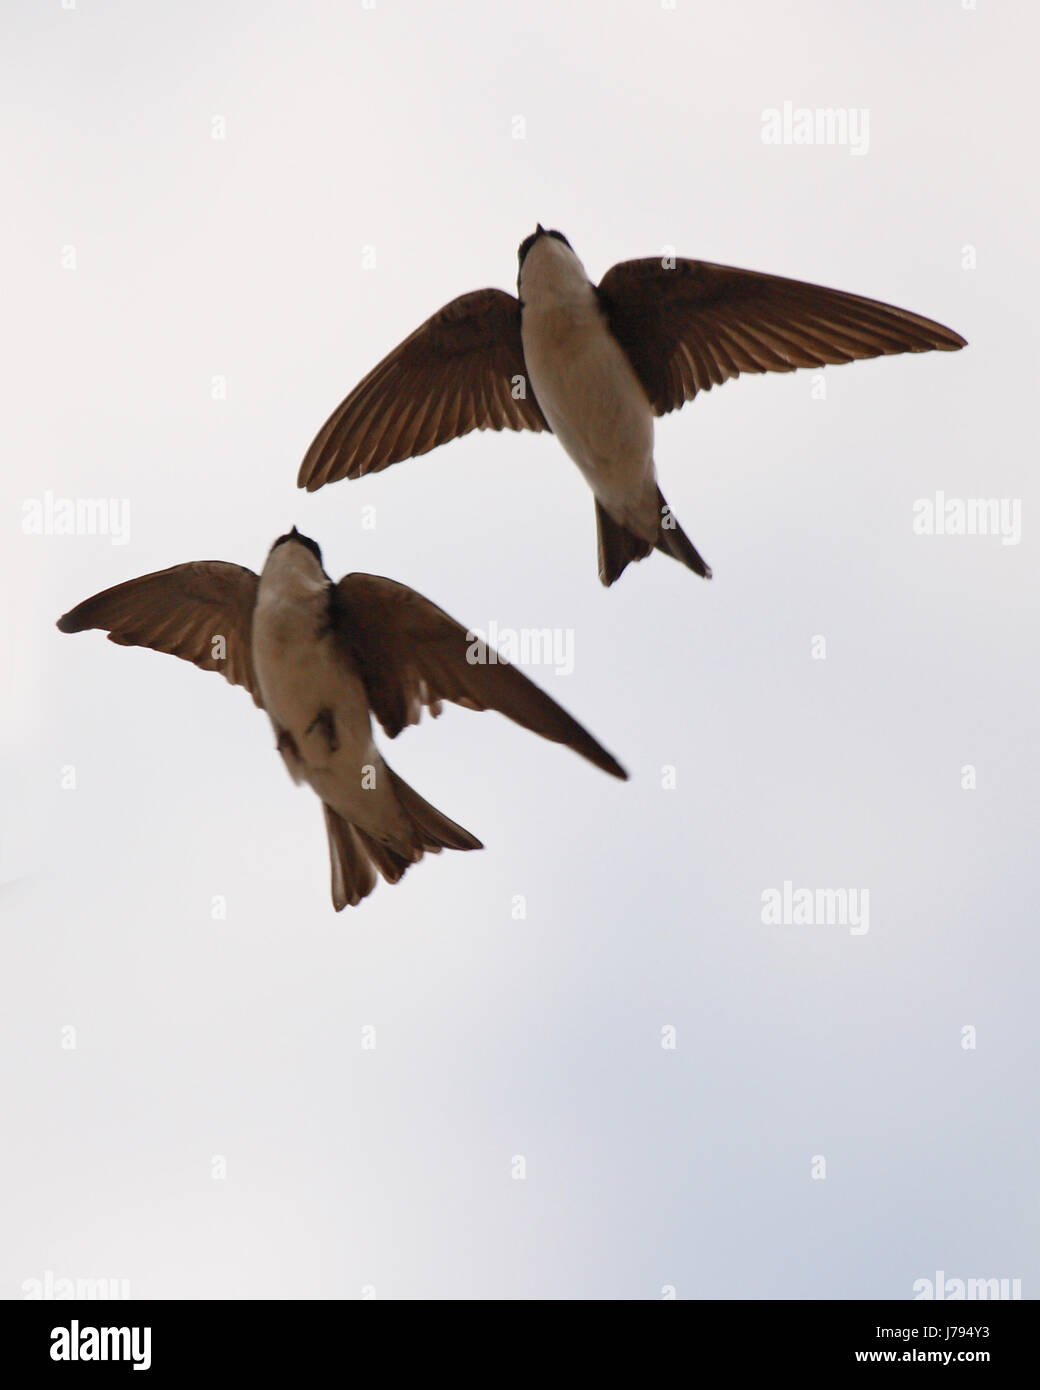 A pair of Tree Swallows flying close in parallel flight. Stock Photo